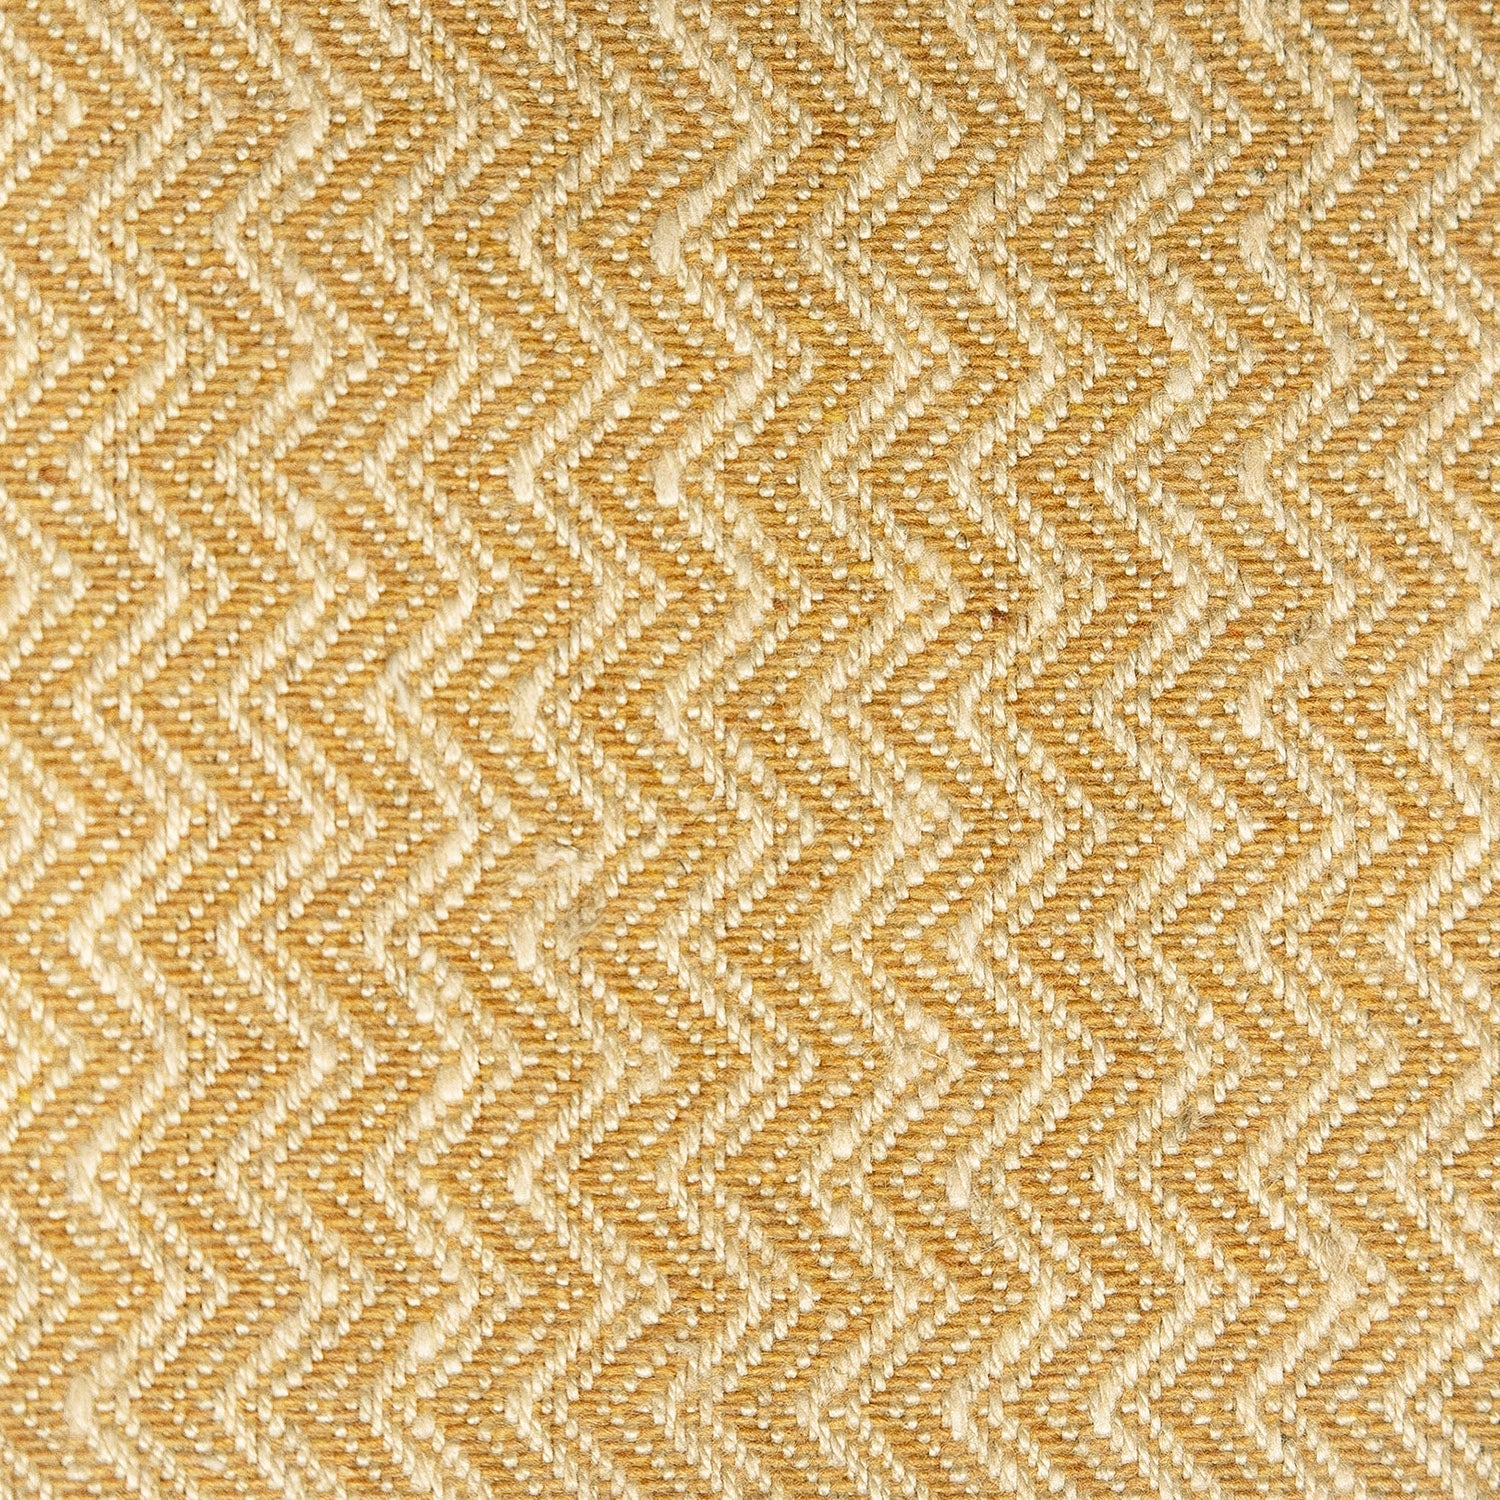 Yellow and neutral chevron weave fabric with a stain resistant finish for curtains and upholstery